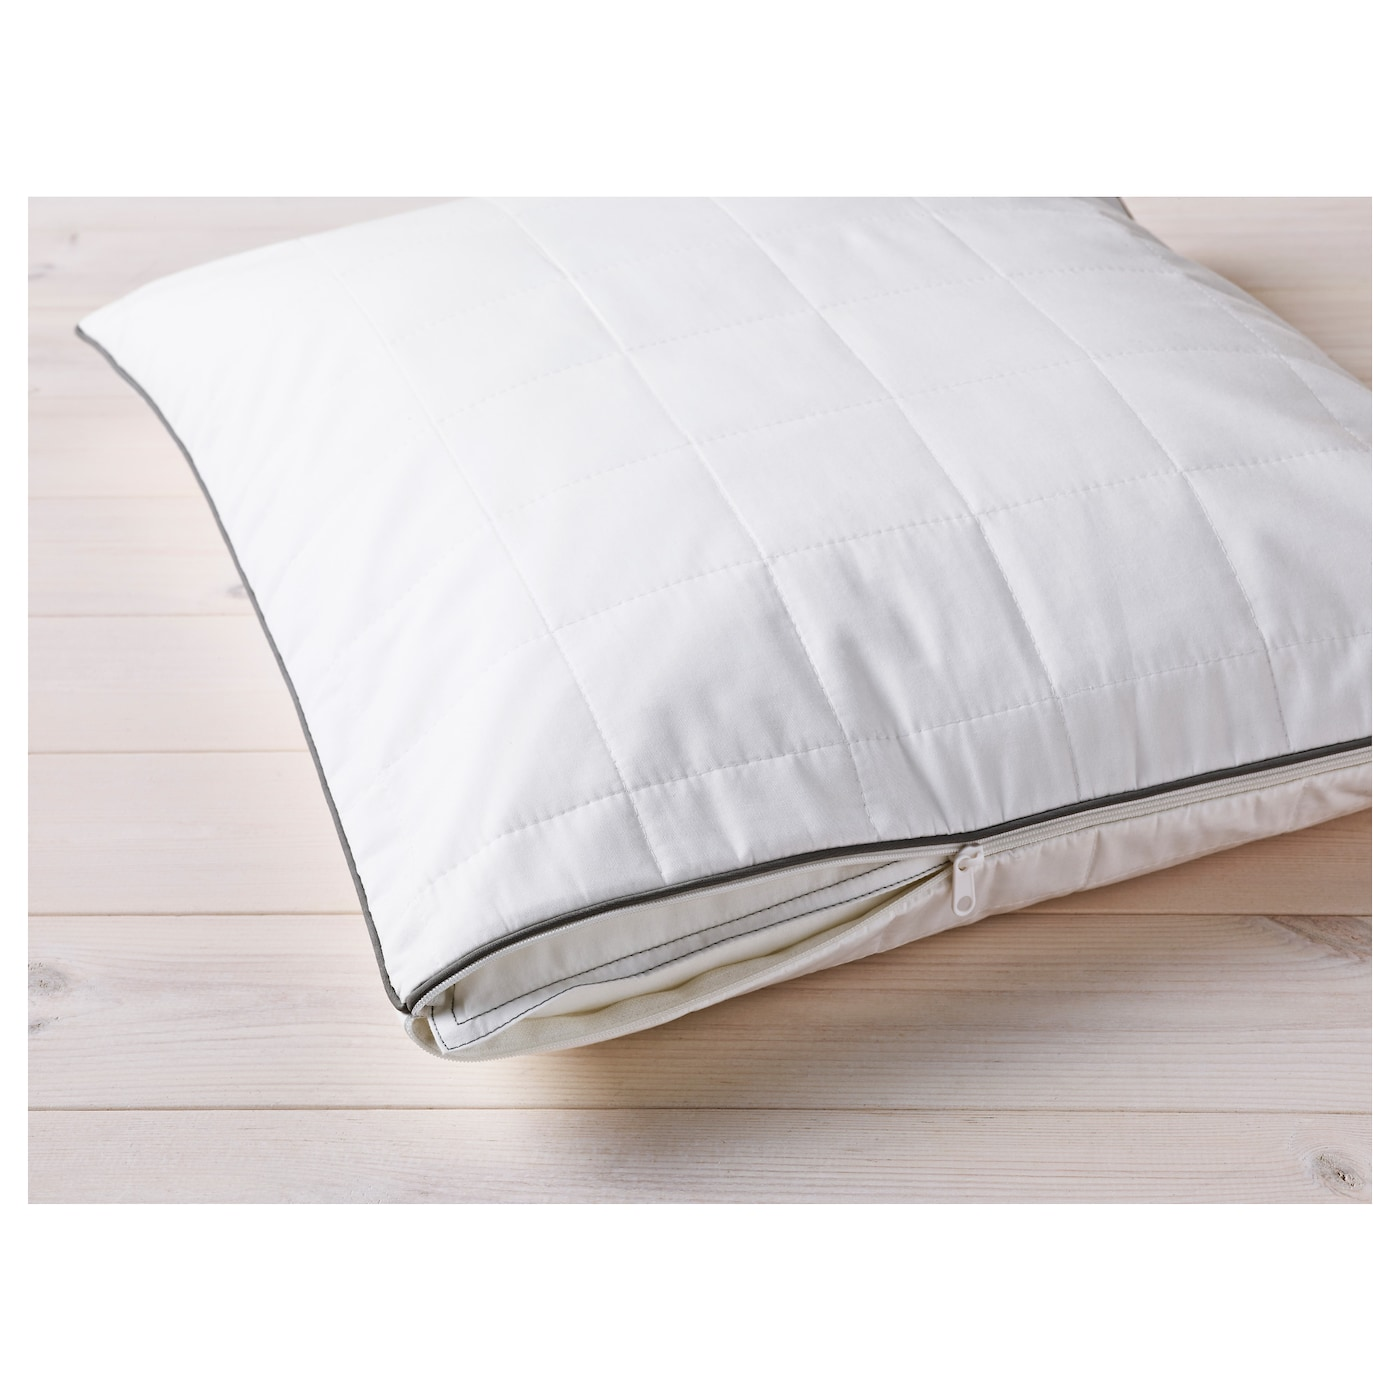 IKEA ROSENDUN pillow protector Protects from stains and dirt and prolongs the life of your pillow.